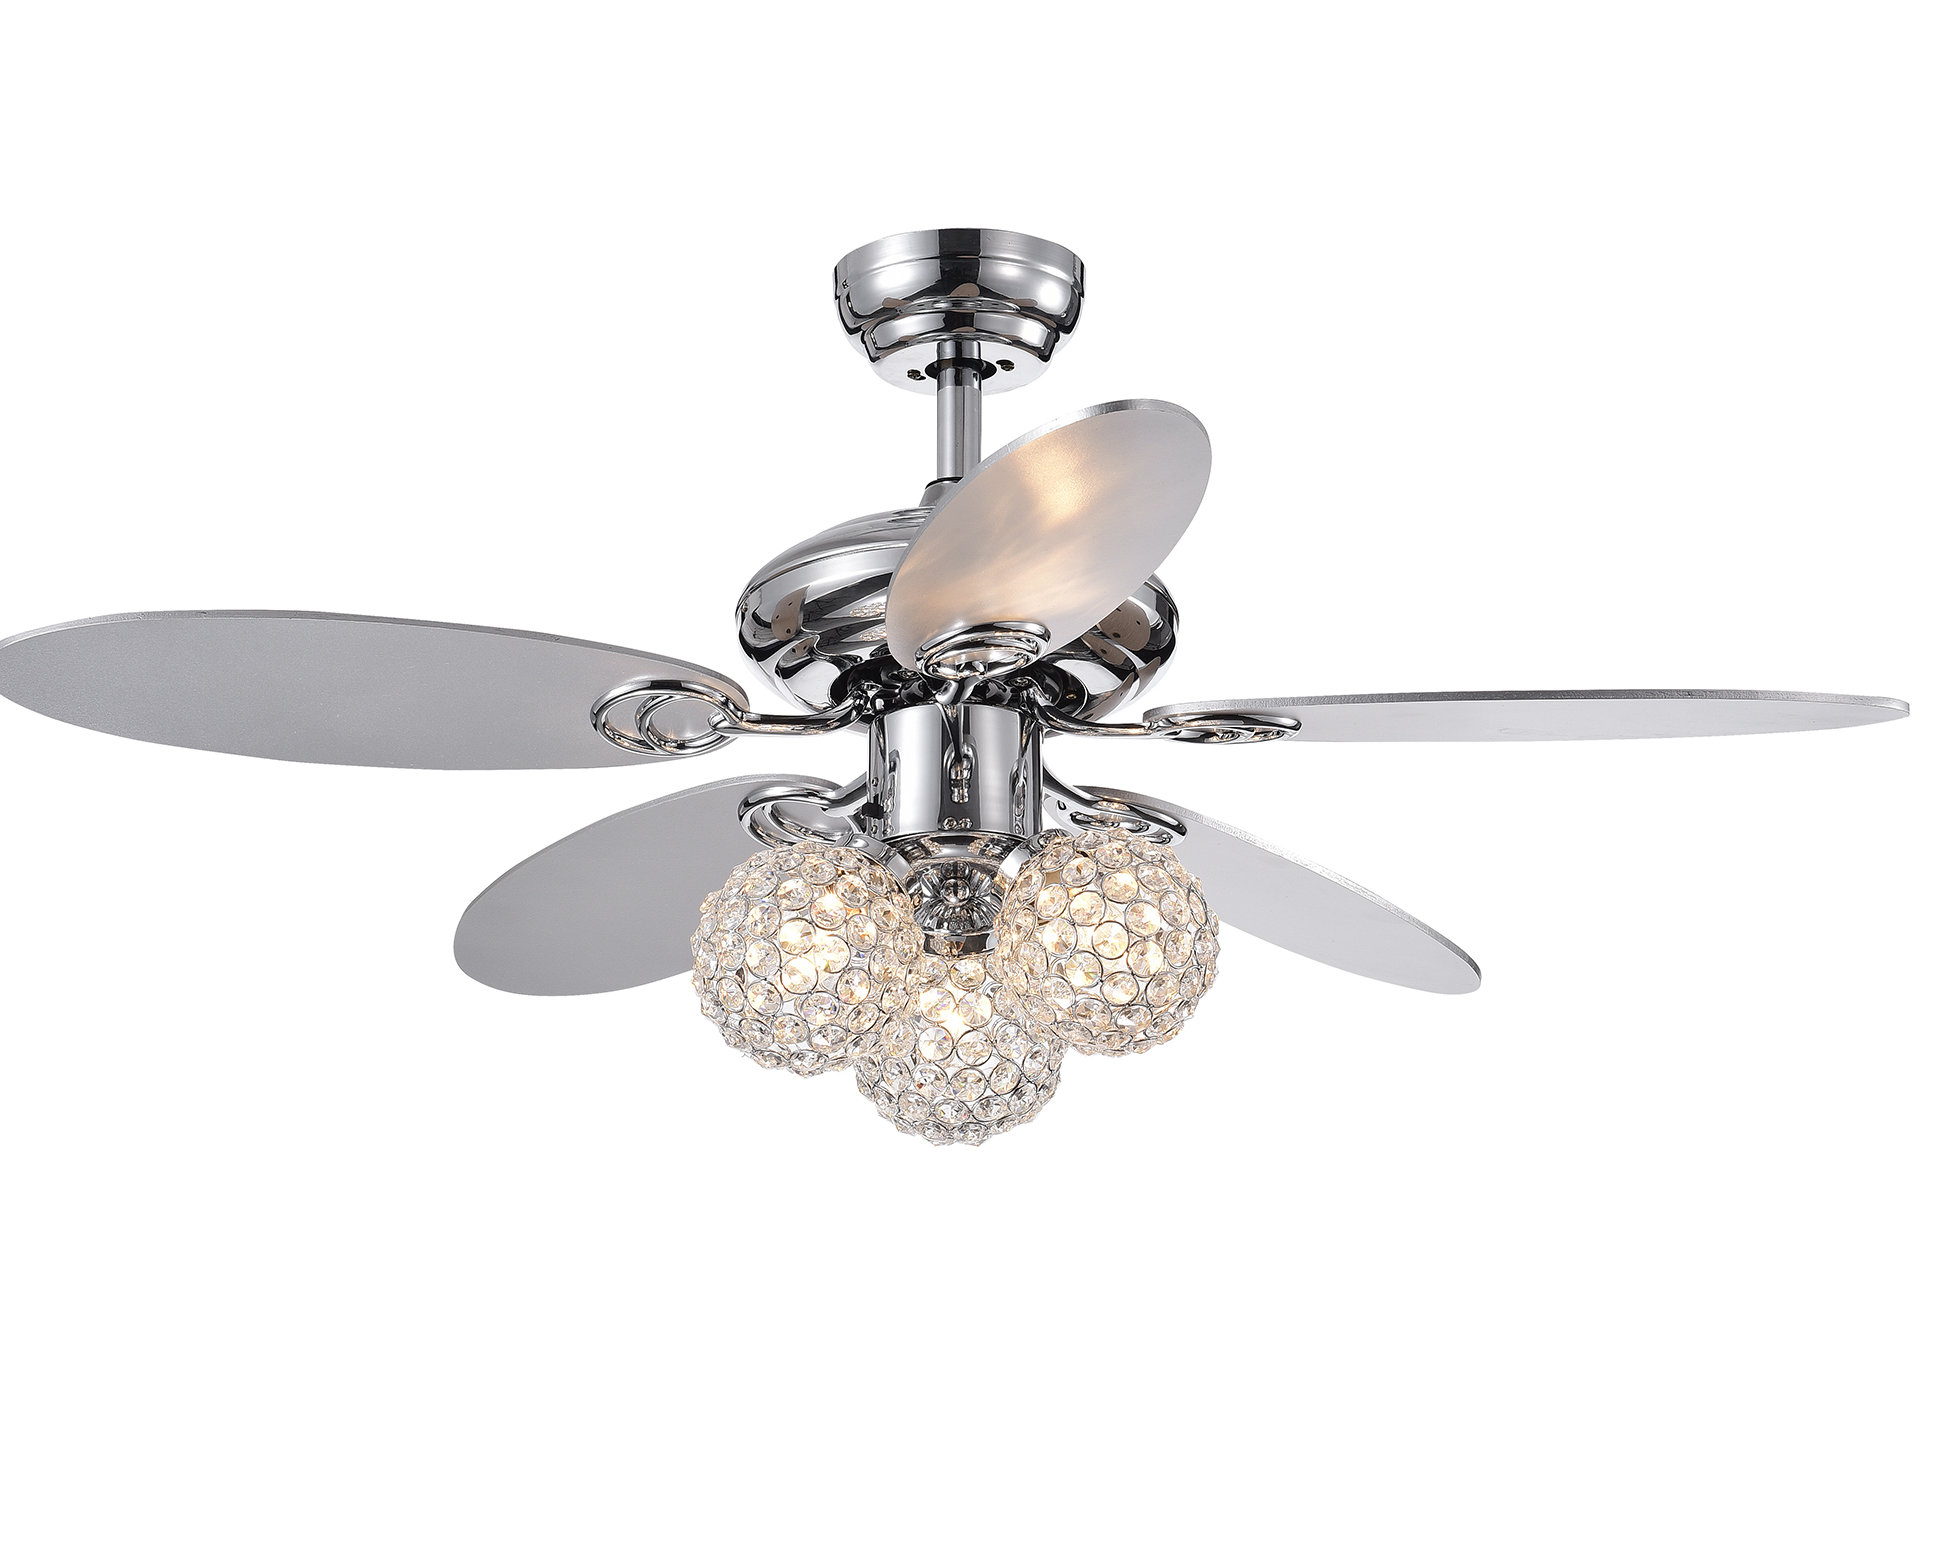 "Tibuh Punched Metal Crystal 5 Blade Ceiling Fans With Remote Intended For Newest 19"" Rosevale 5 Blade Ceiling Fan With Remote (View 14 of 20)"